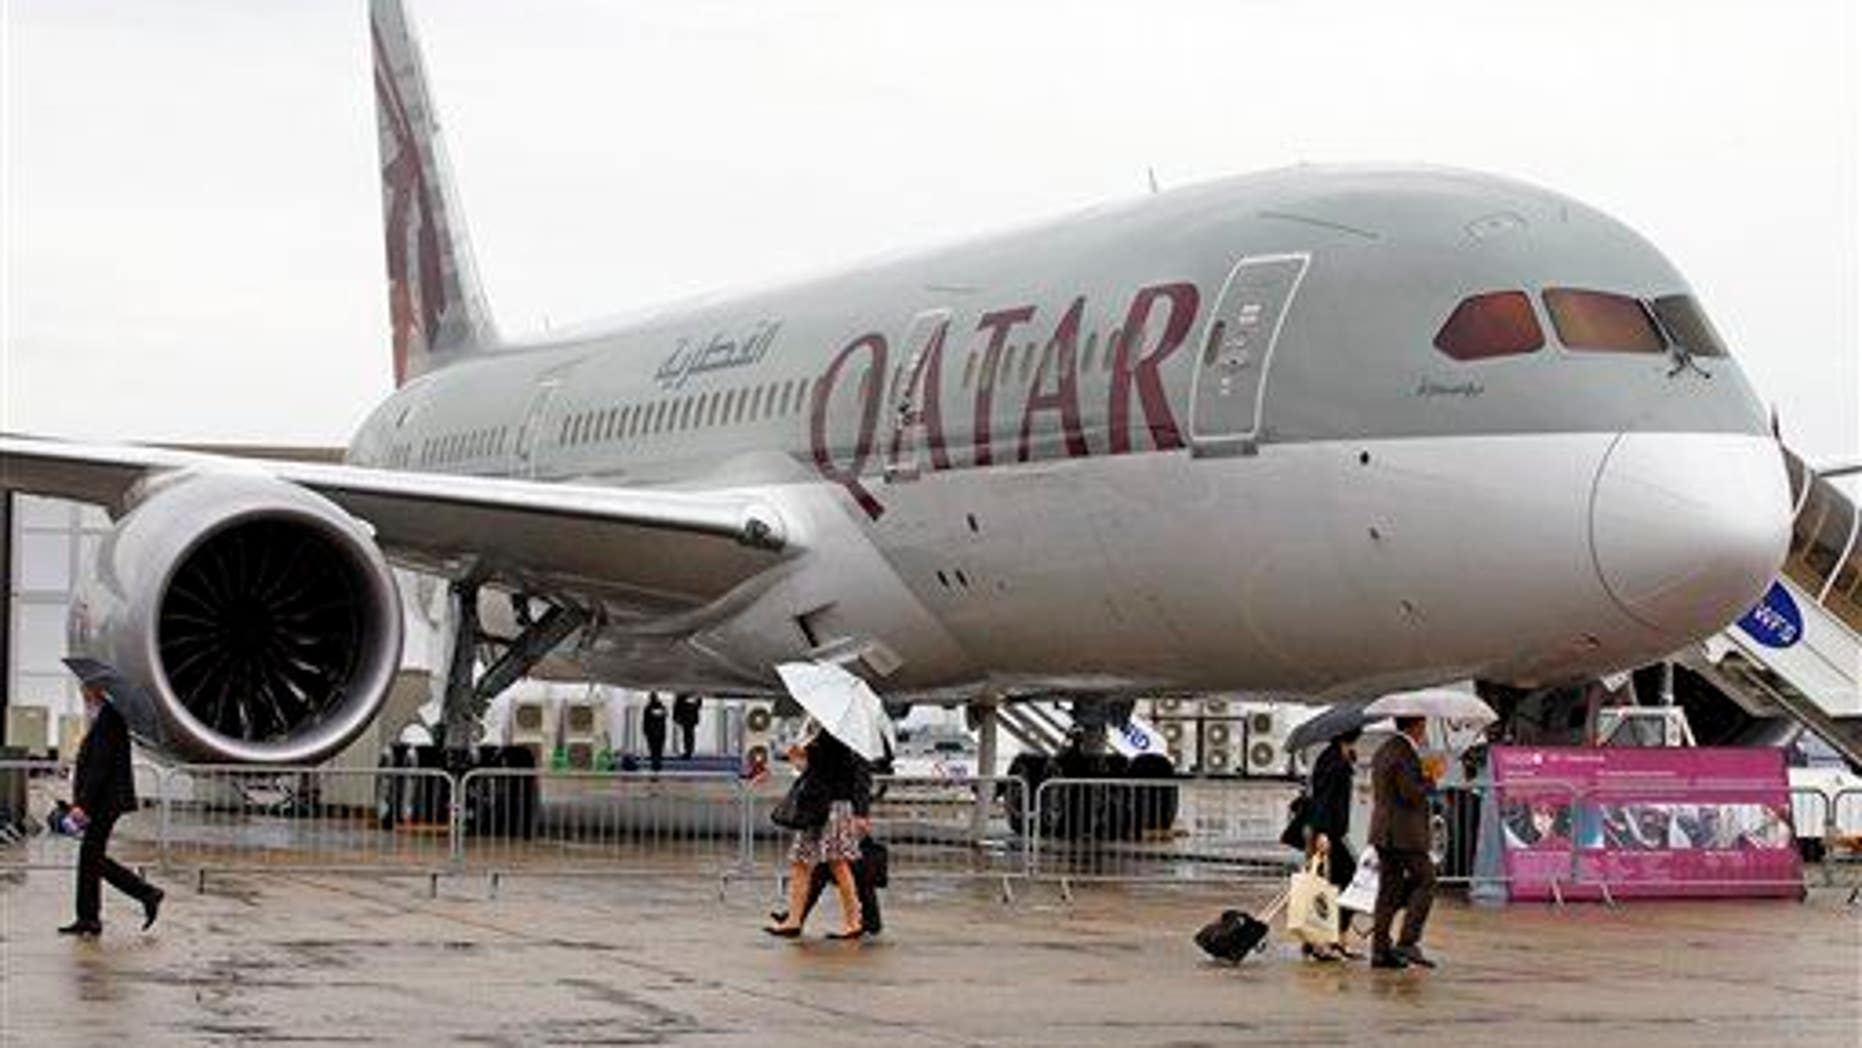 Visitors walk past a Qatar Airways Boeing Dreamliner, displayed at the 50th Paris Air Show at Paris-Le Bourget Airport, north of Paris, June 20, 2013.